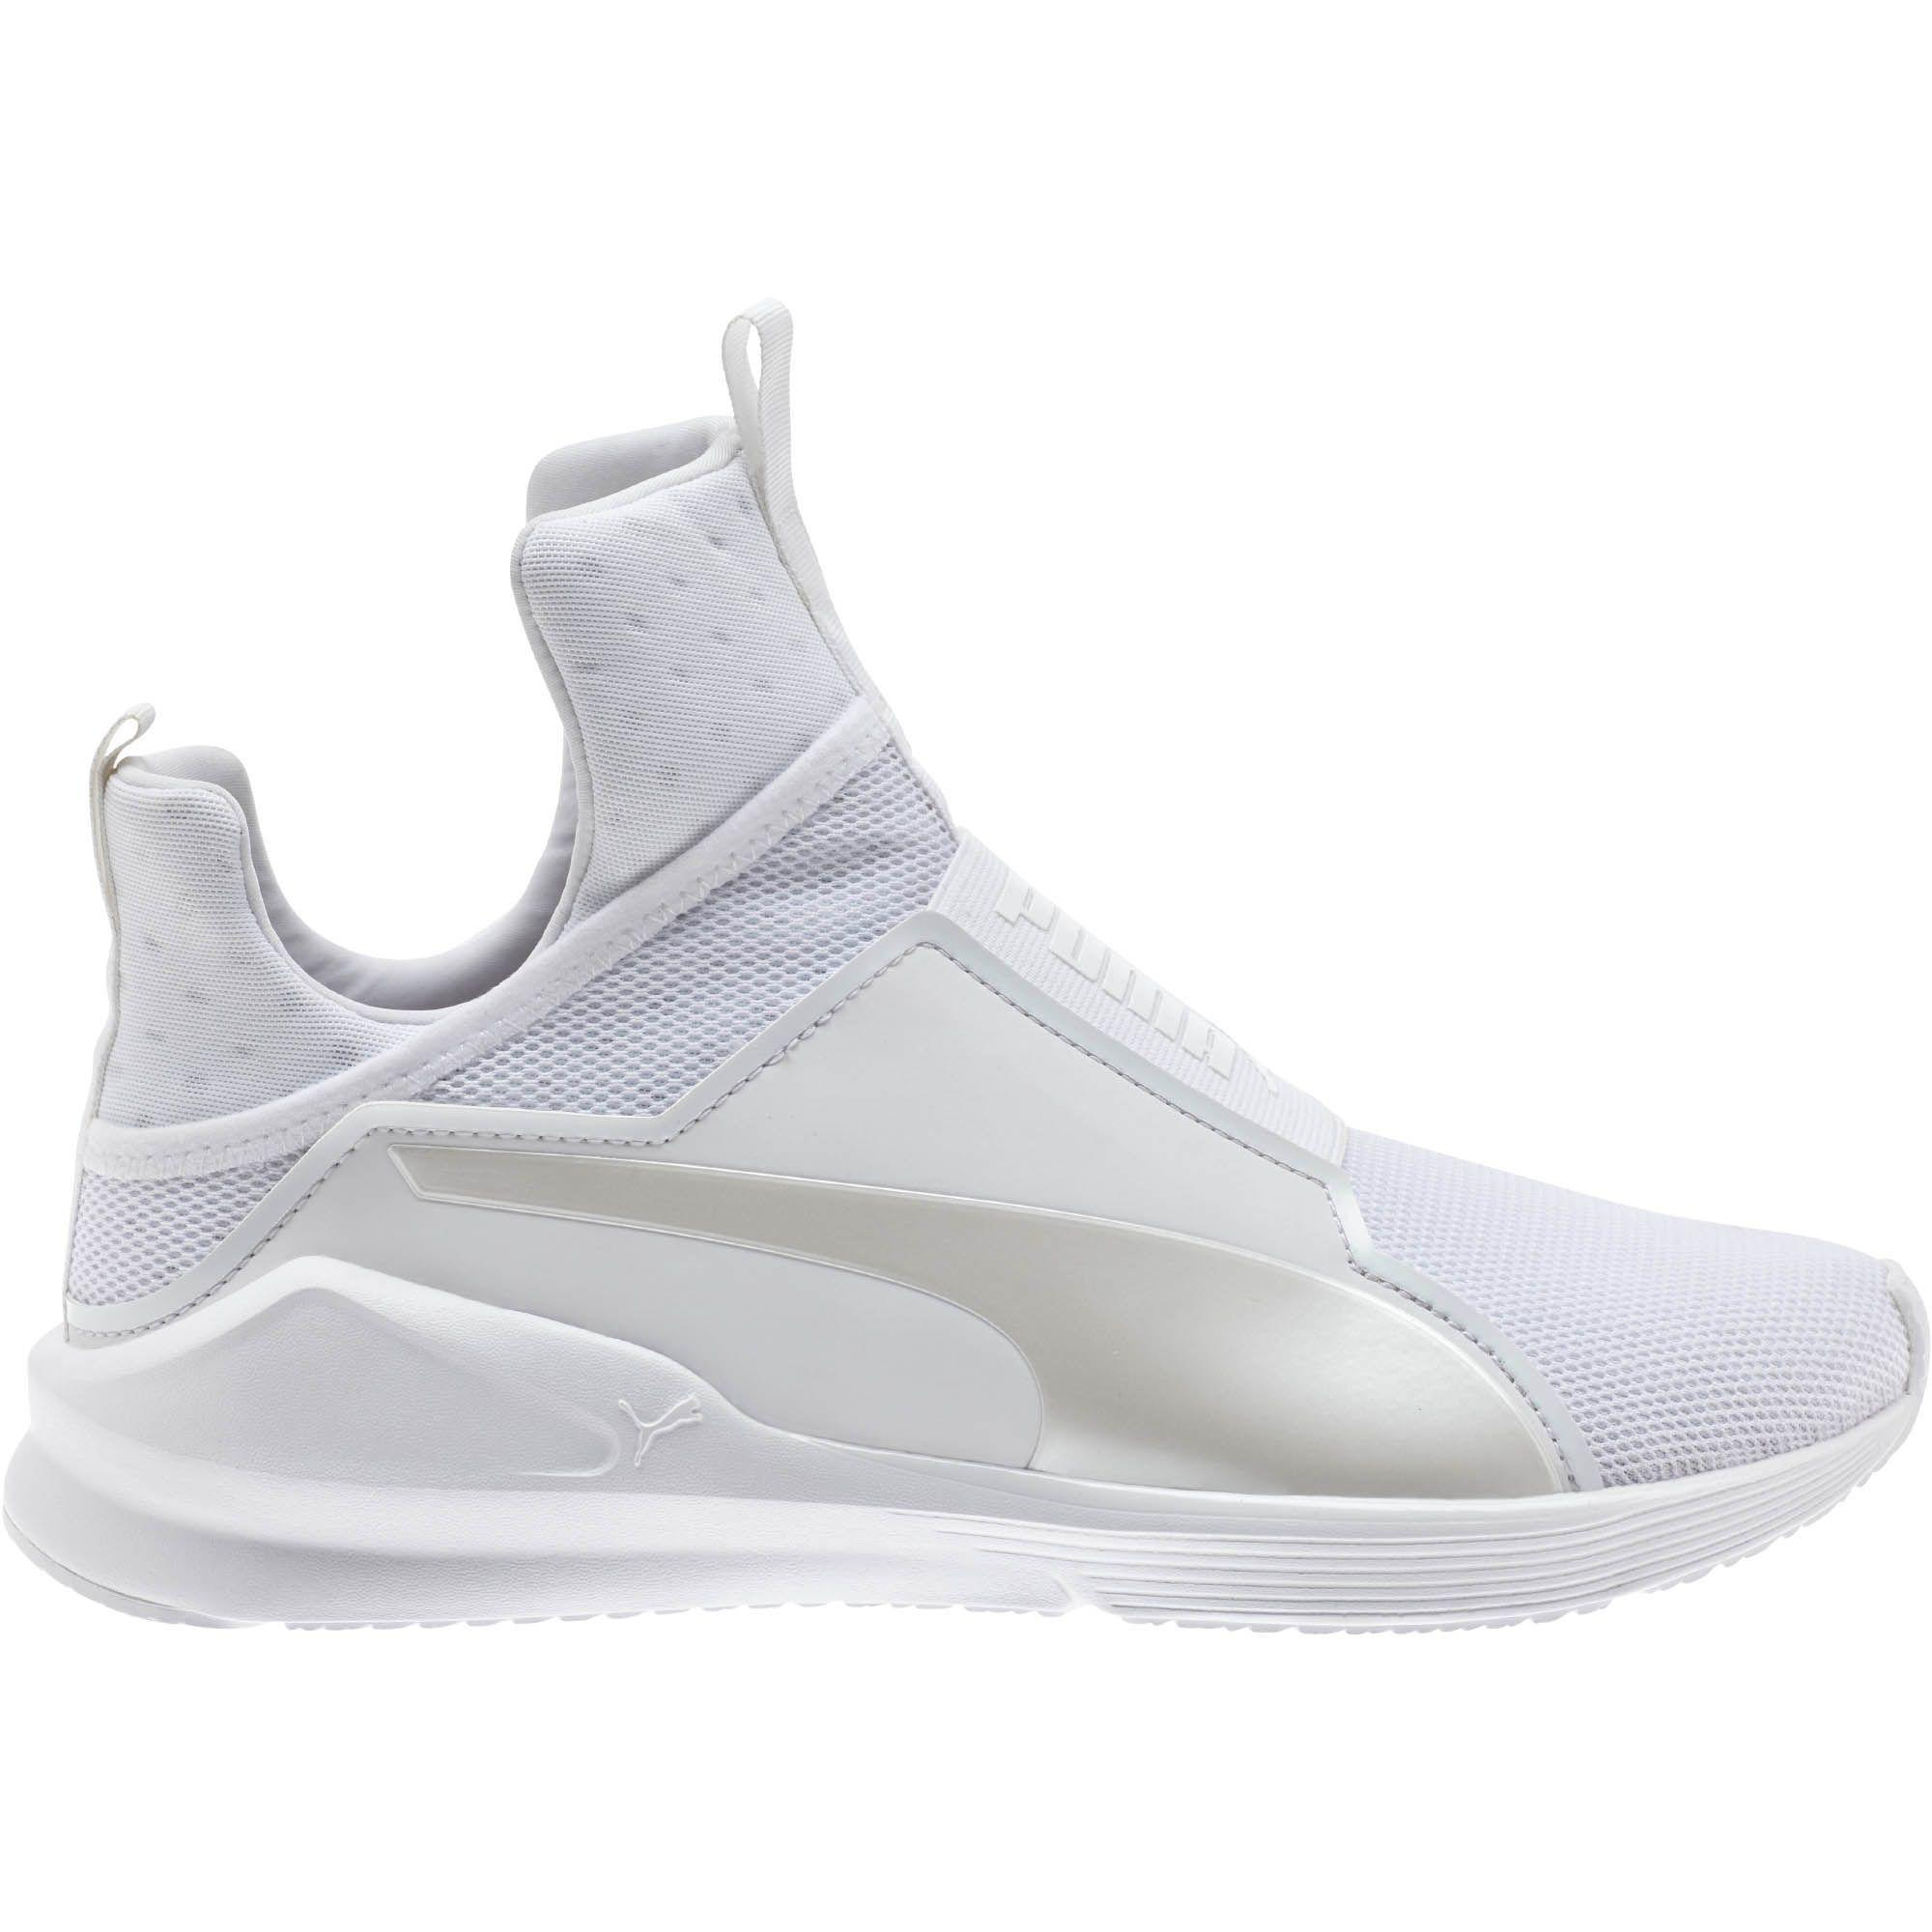 PUMA Fierce Women's at Eastbay in 2020 | Mens puma shoes